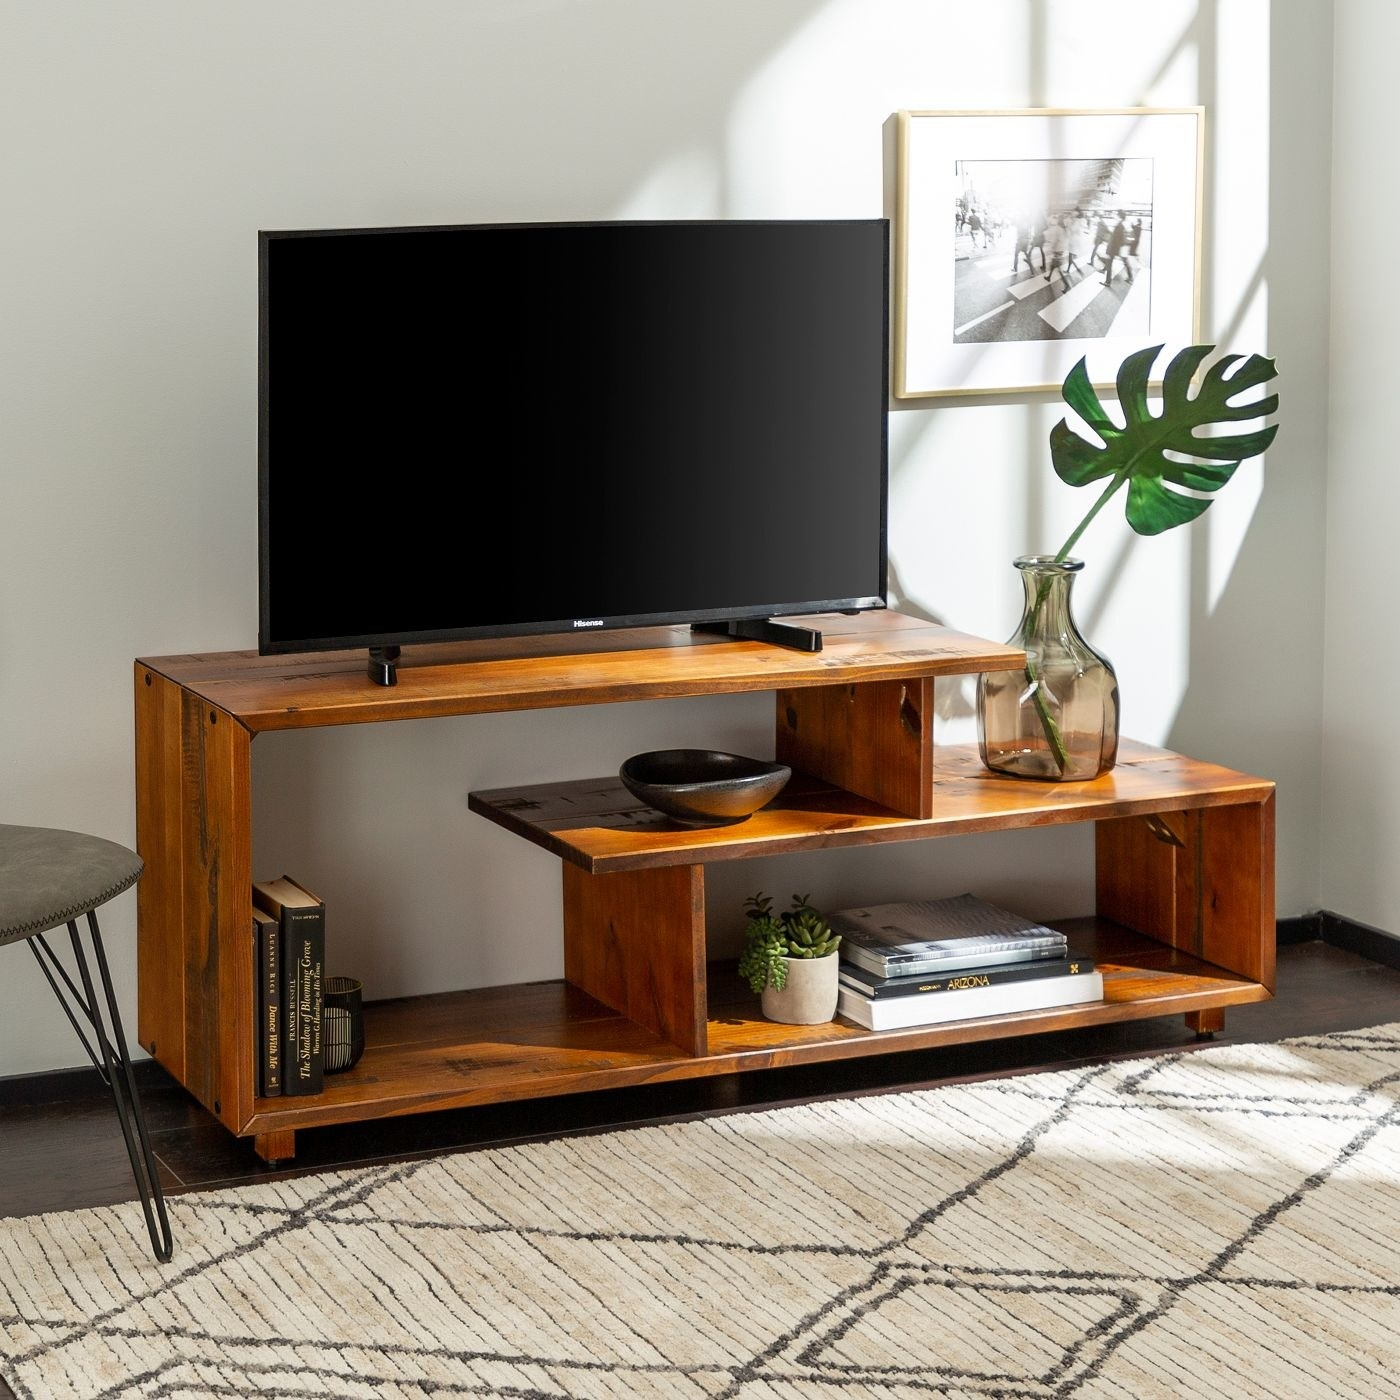 The brown TV stand in a home